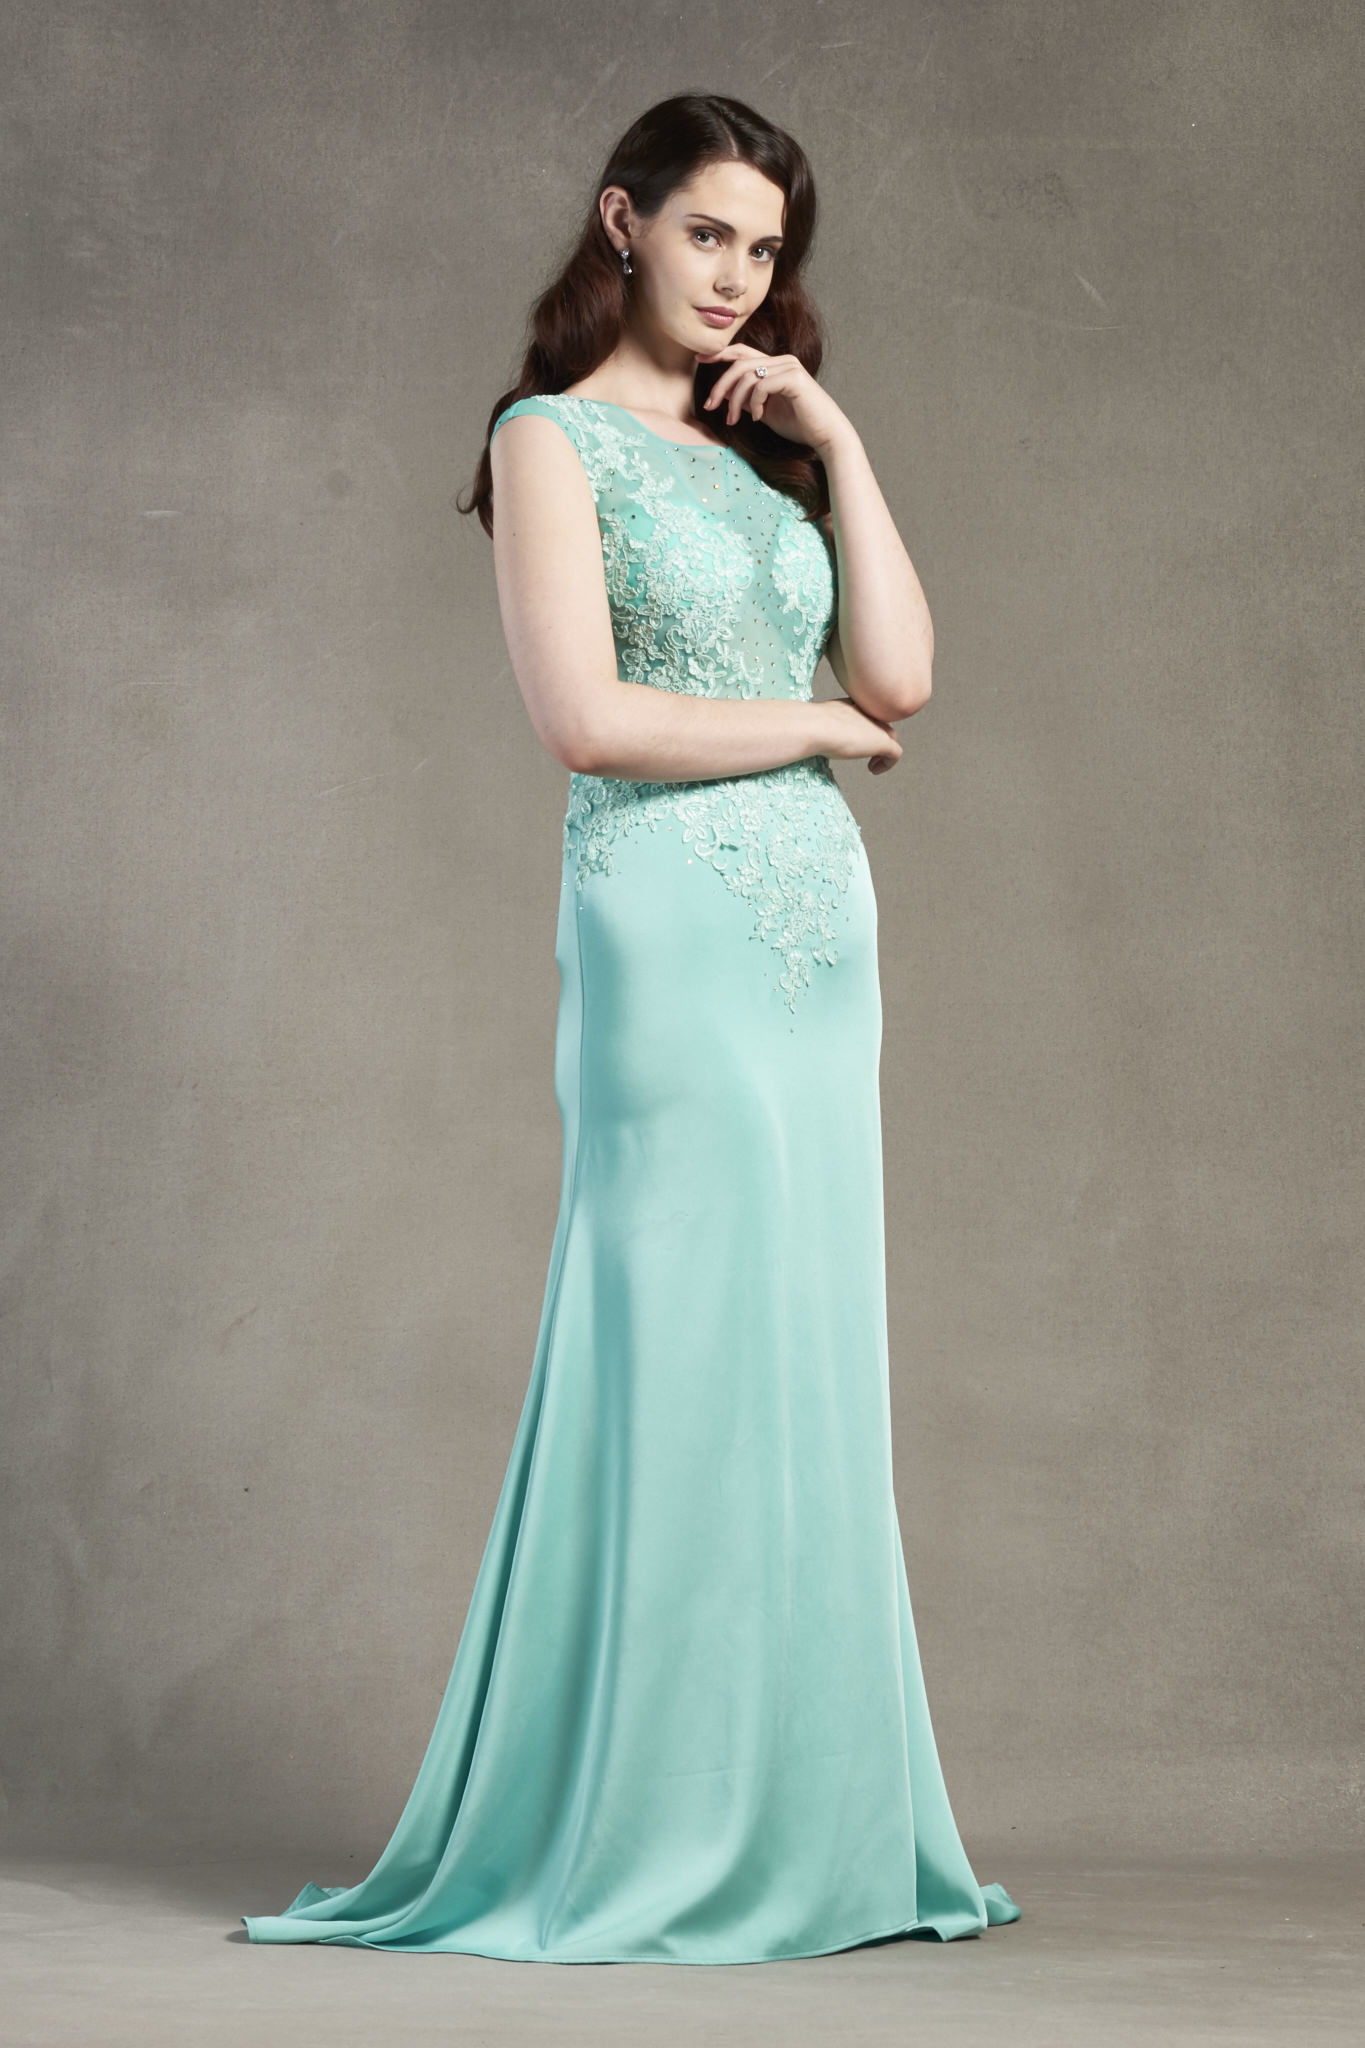 Sleeveless Illusion Neck Lace Appliques Sheath Long Satin Chiffon Prom Dress